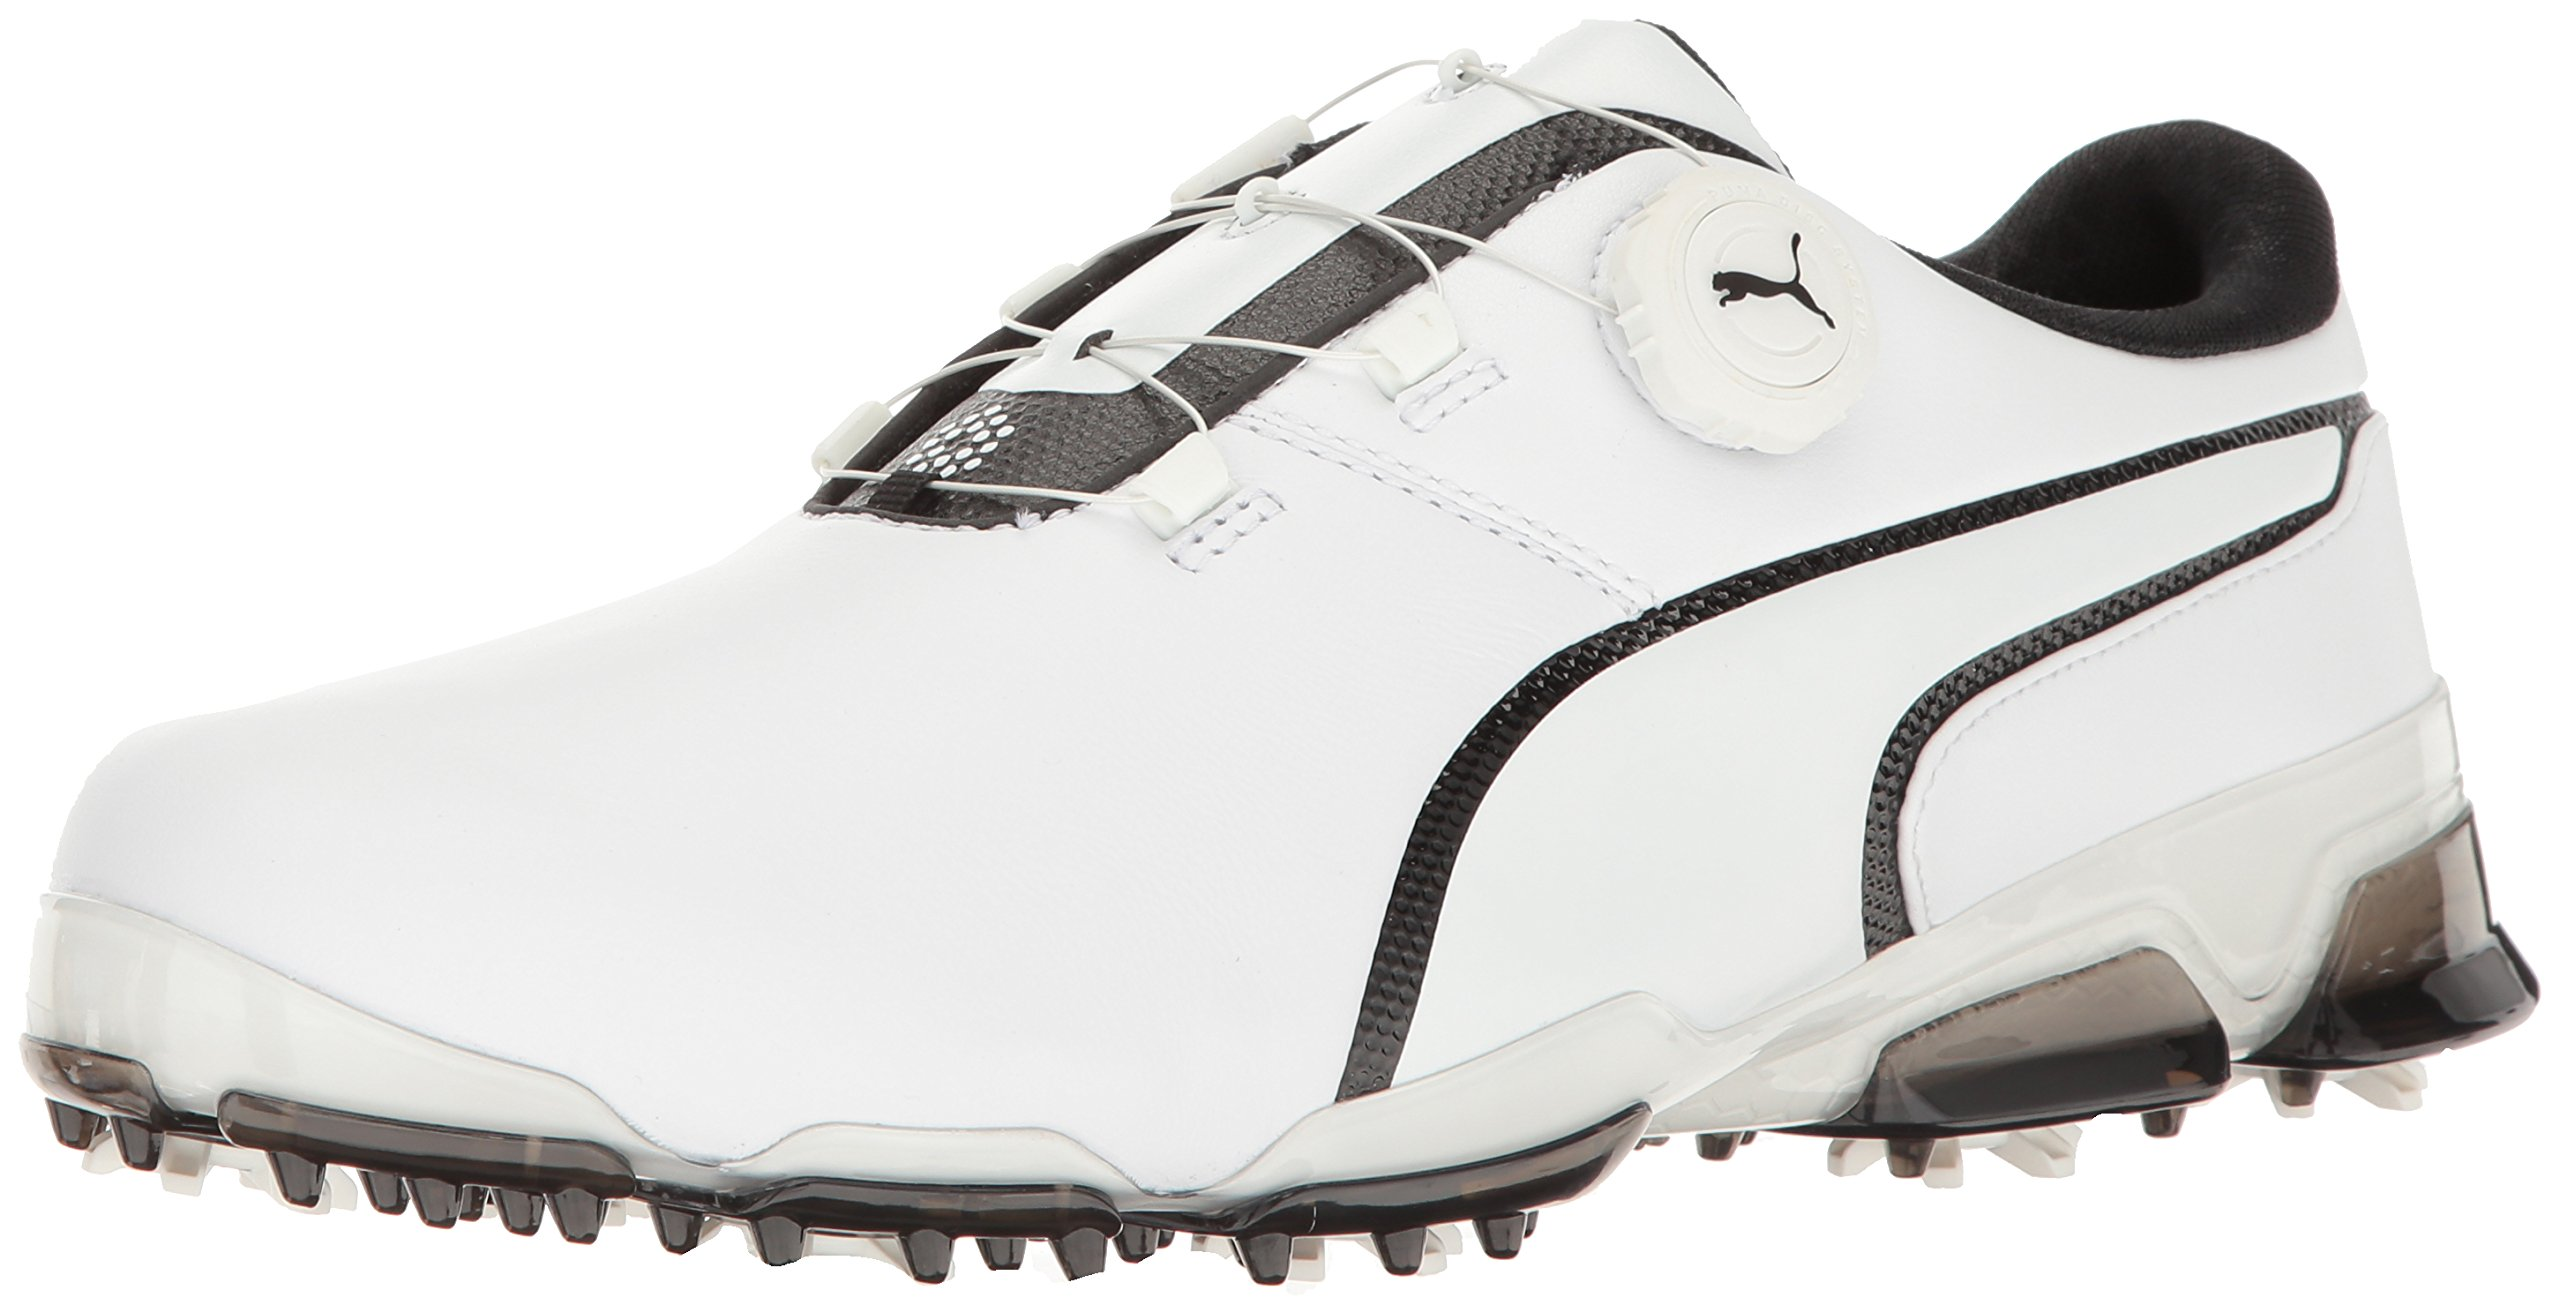 Galleon - PUMA Men s Titantour Ignite DISC Golf Shoe White Black ... 1688457e1